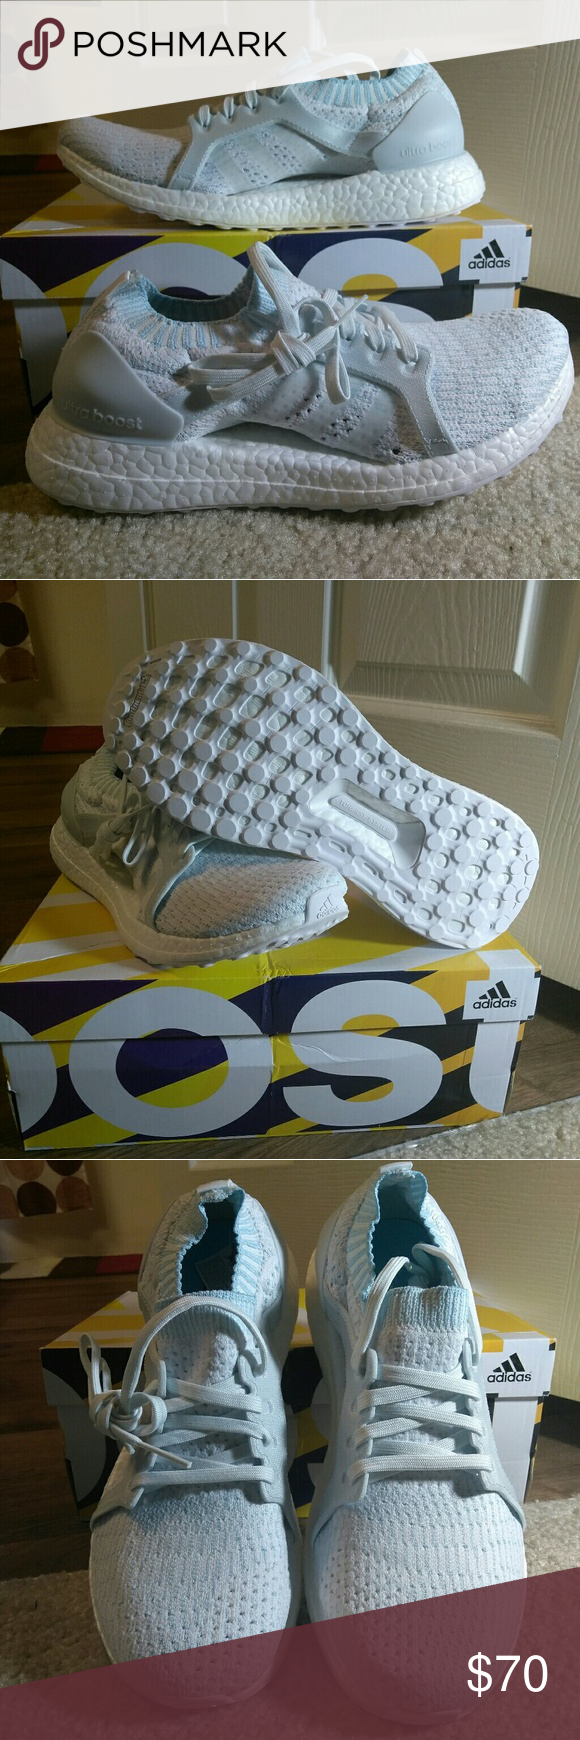 5ec23d0362a59 ADIDAS UltraBOOST X PARLEY WOMEN S RUNNING SHOES Women s Adidas UltraBOOST  running shoes IceBlu Wht PC BY2707 adidas Shoes Athletic Shoes